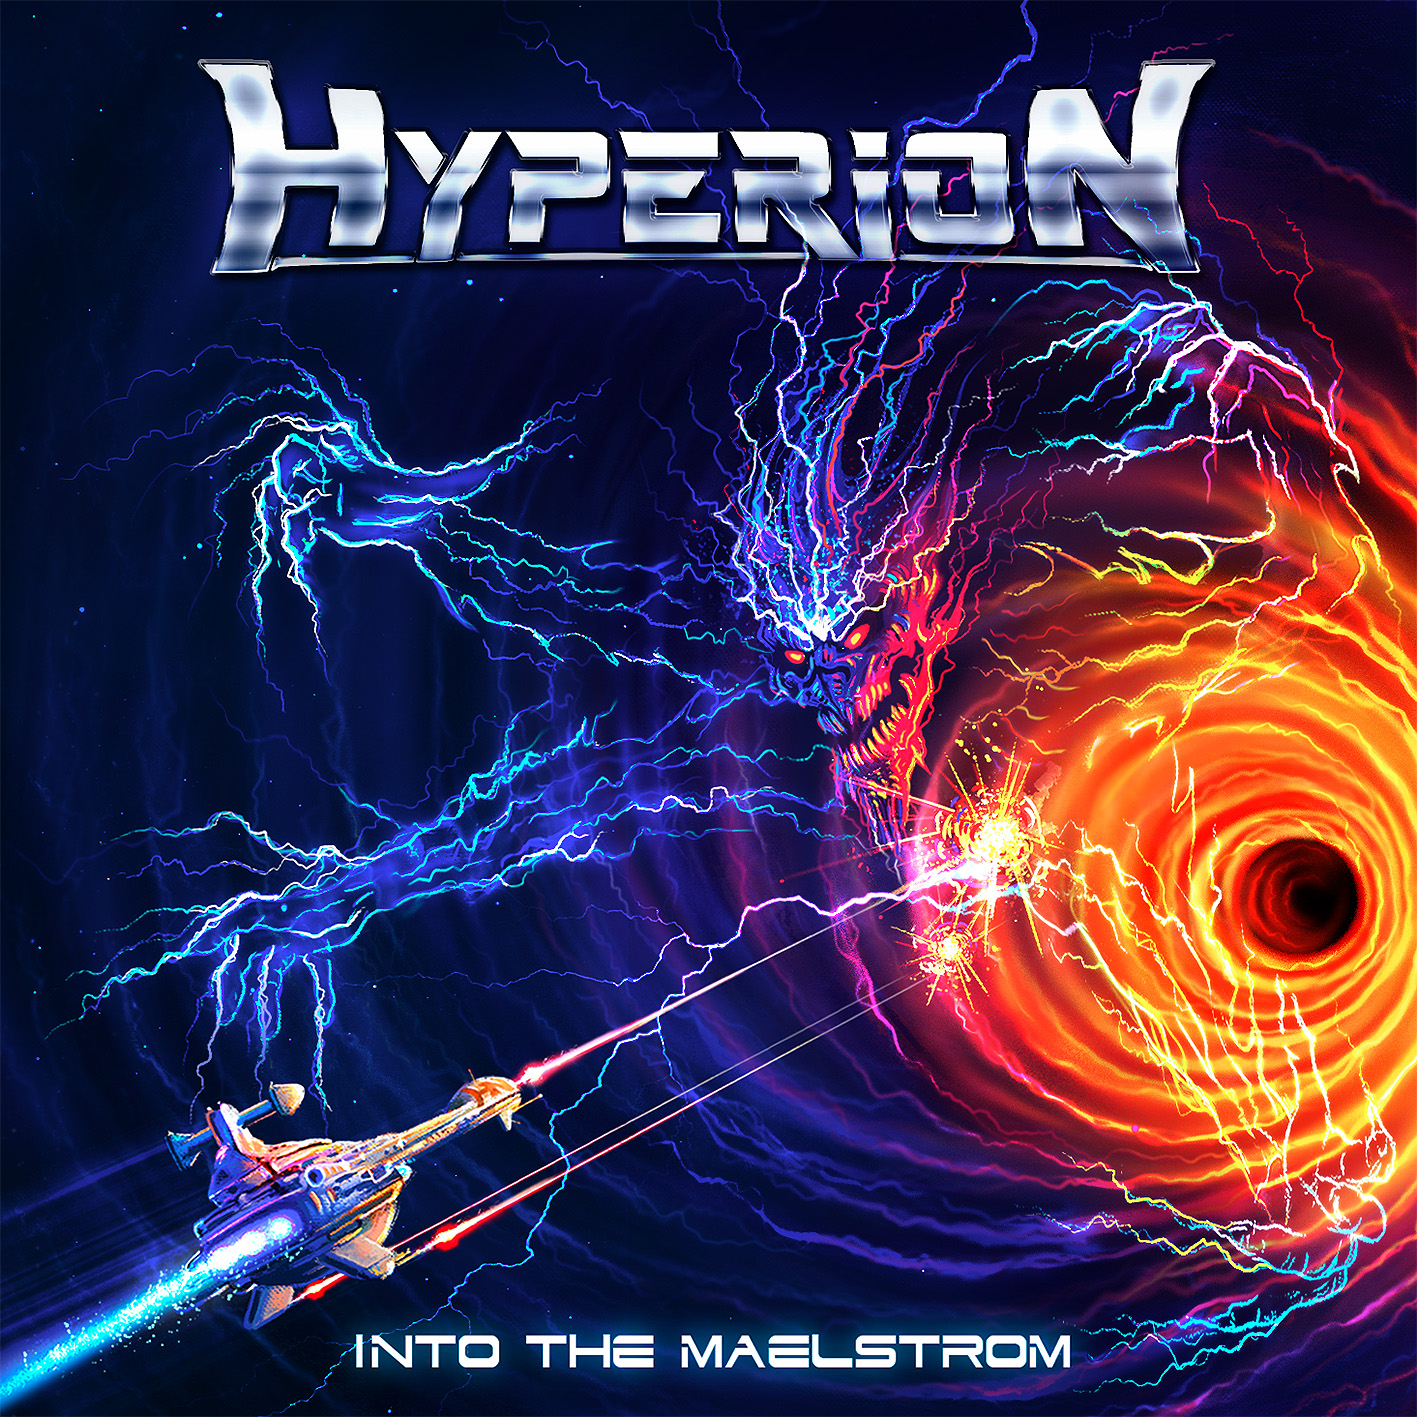 Hyperion - Into the Malestrom CD art